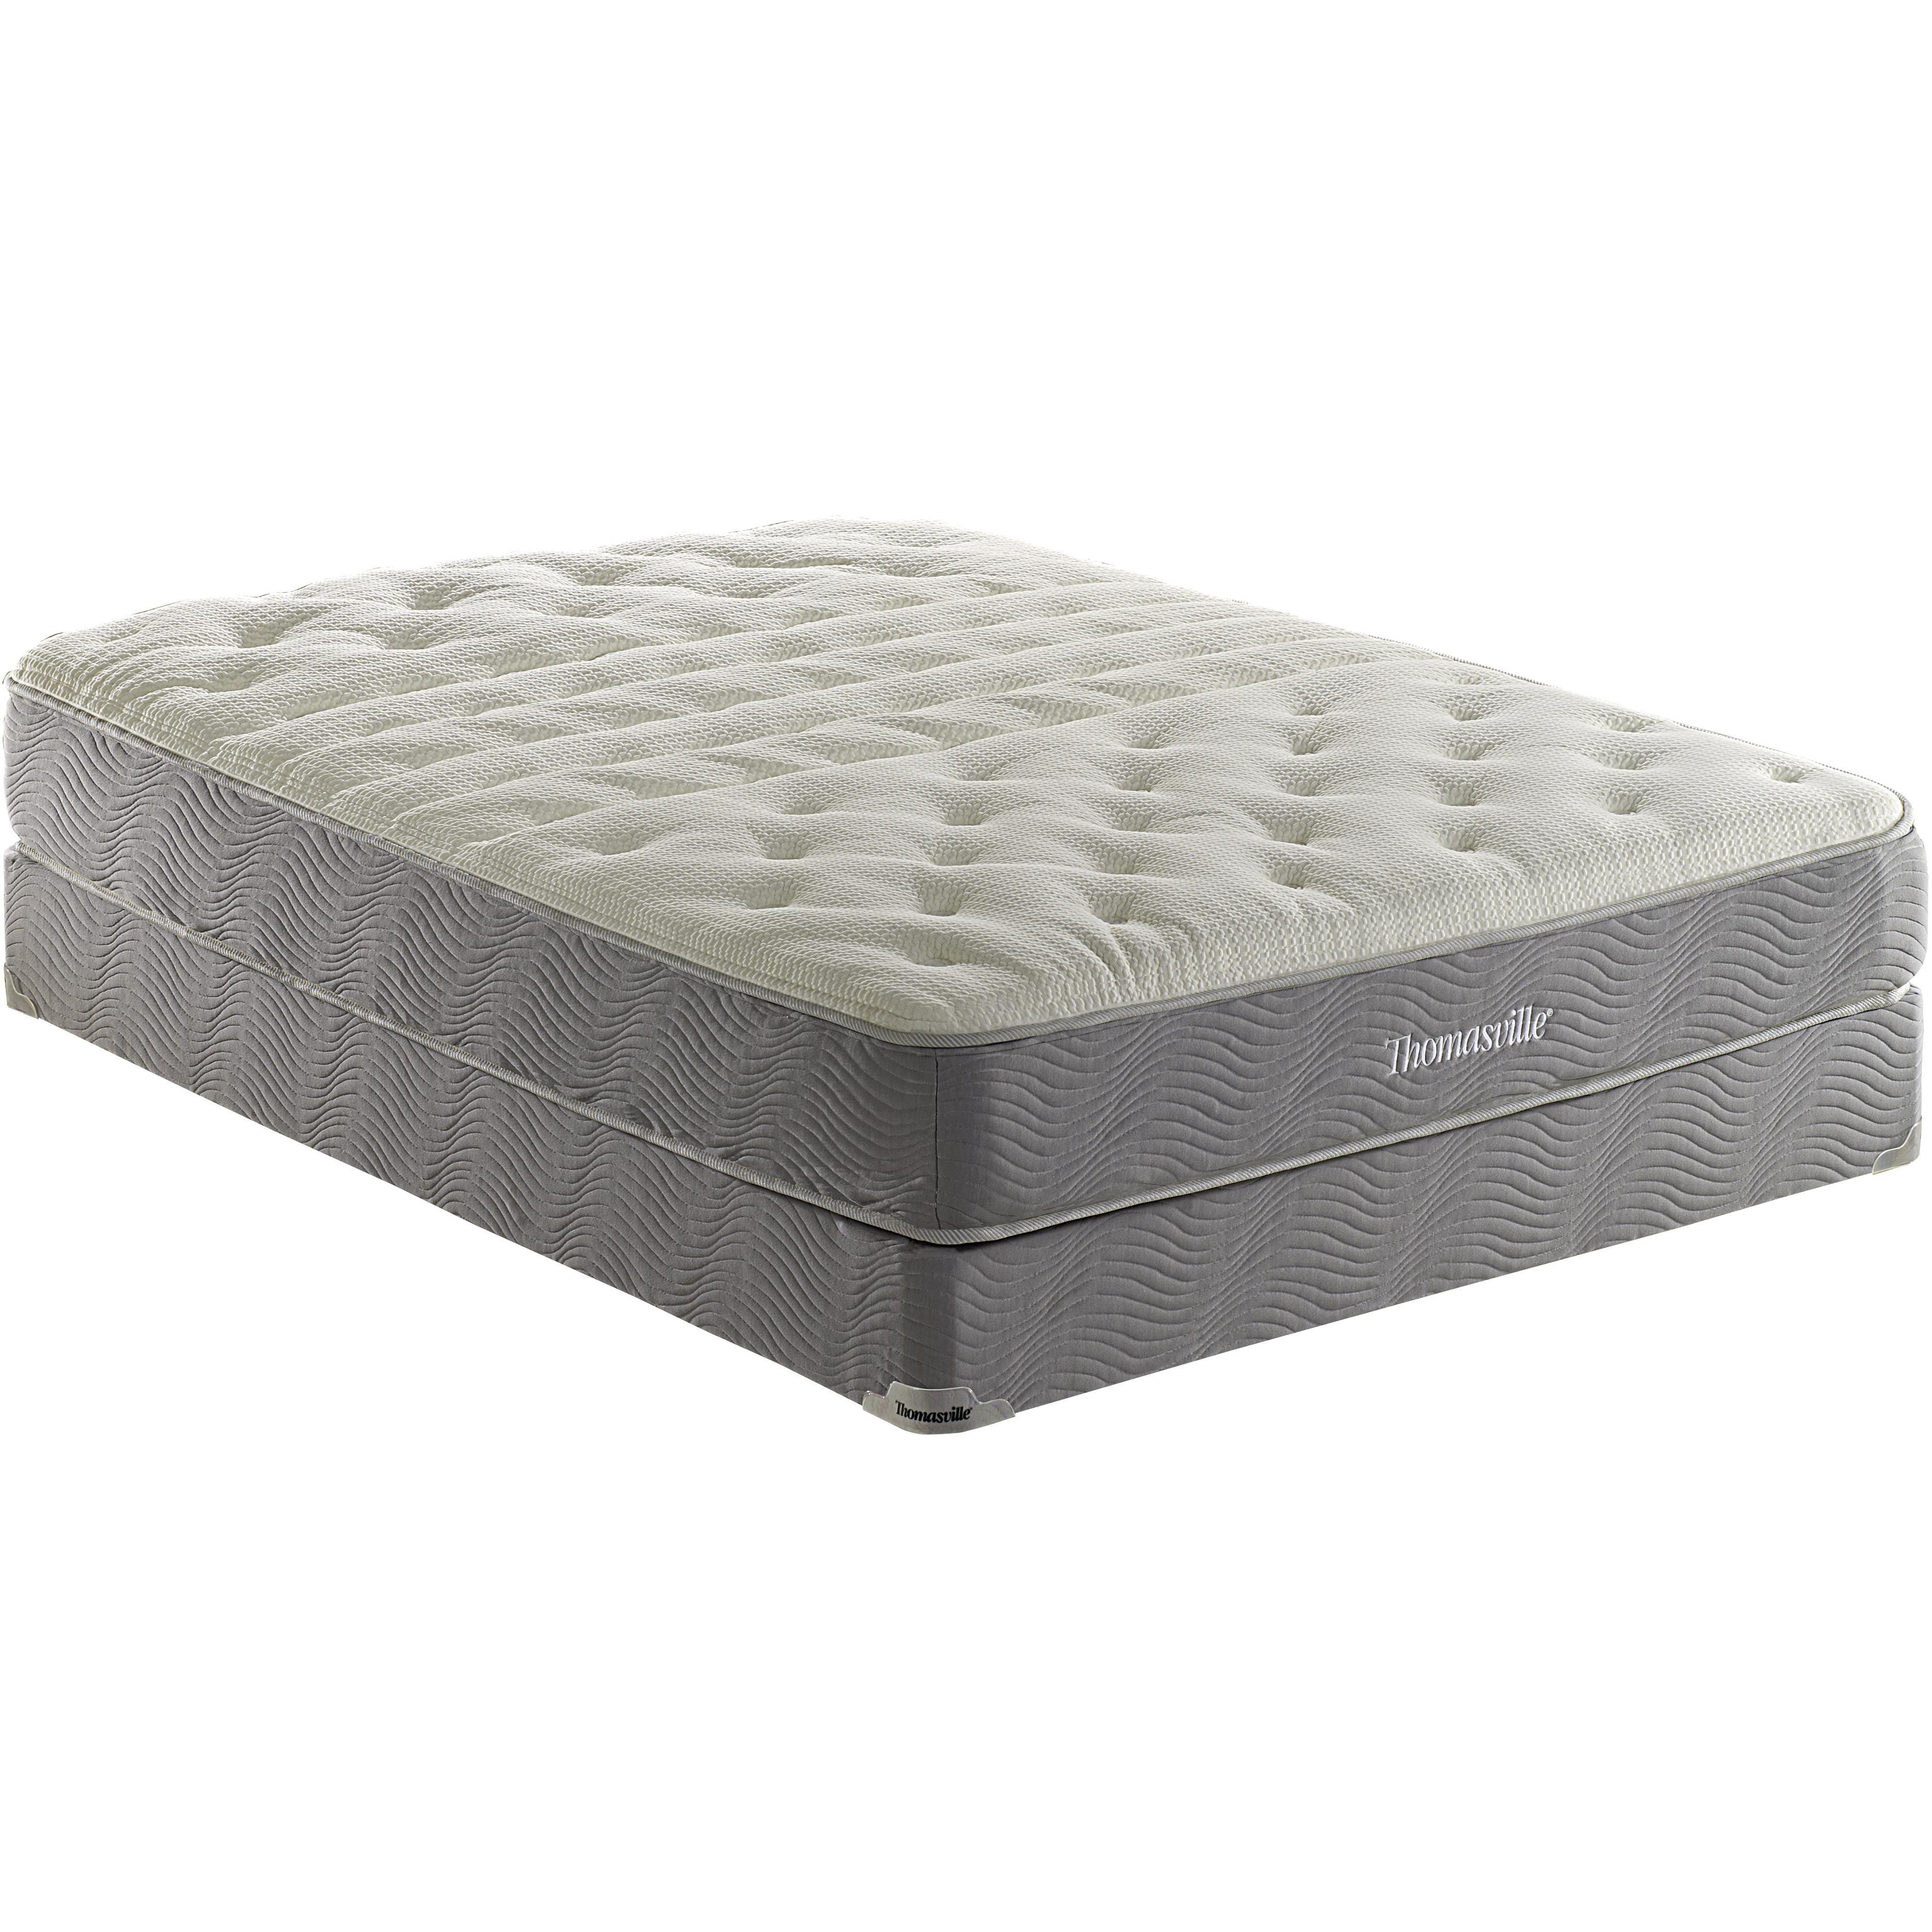 Gemini Twin XL Adjustable Airbed by Boyd Specialty Sleep at Beds N Stuff